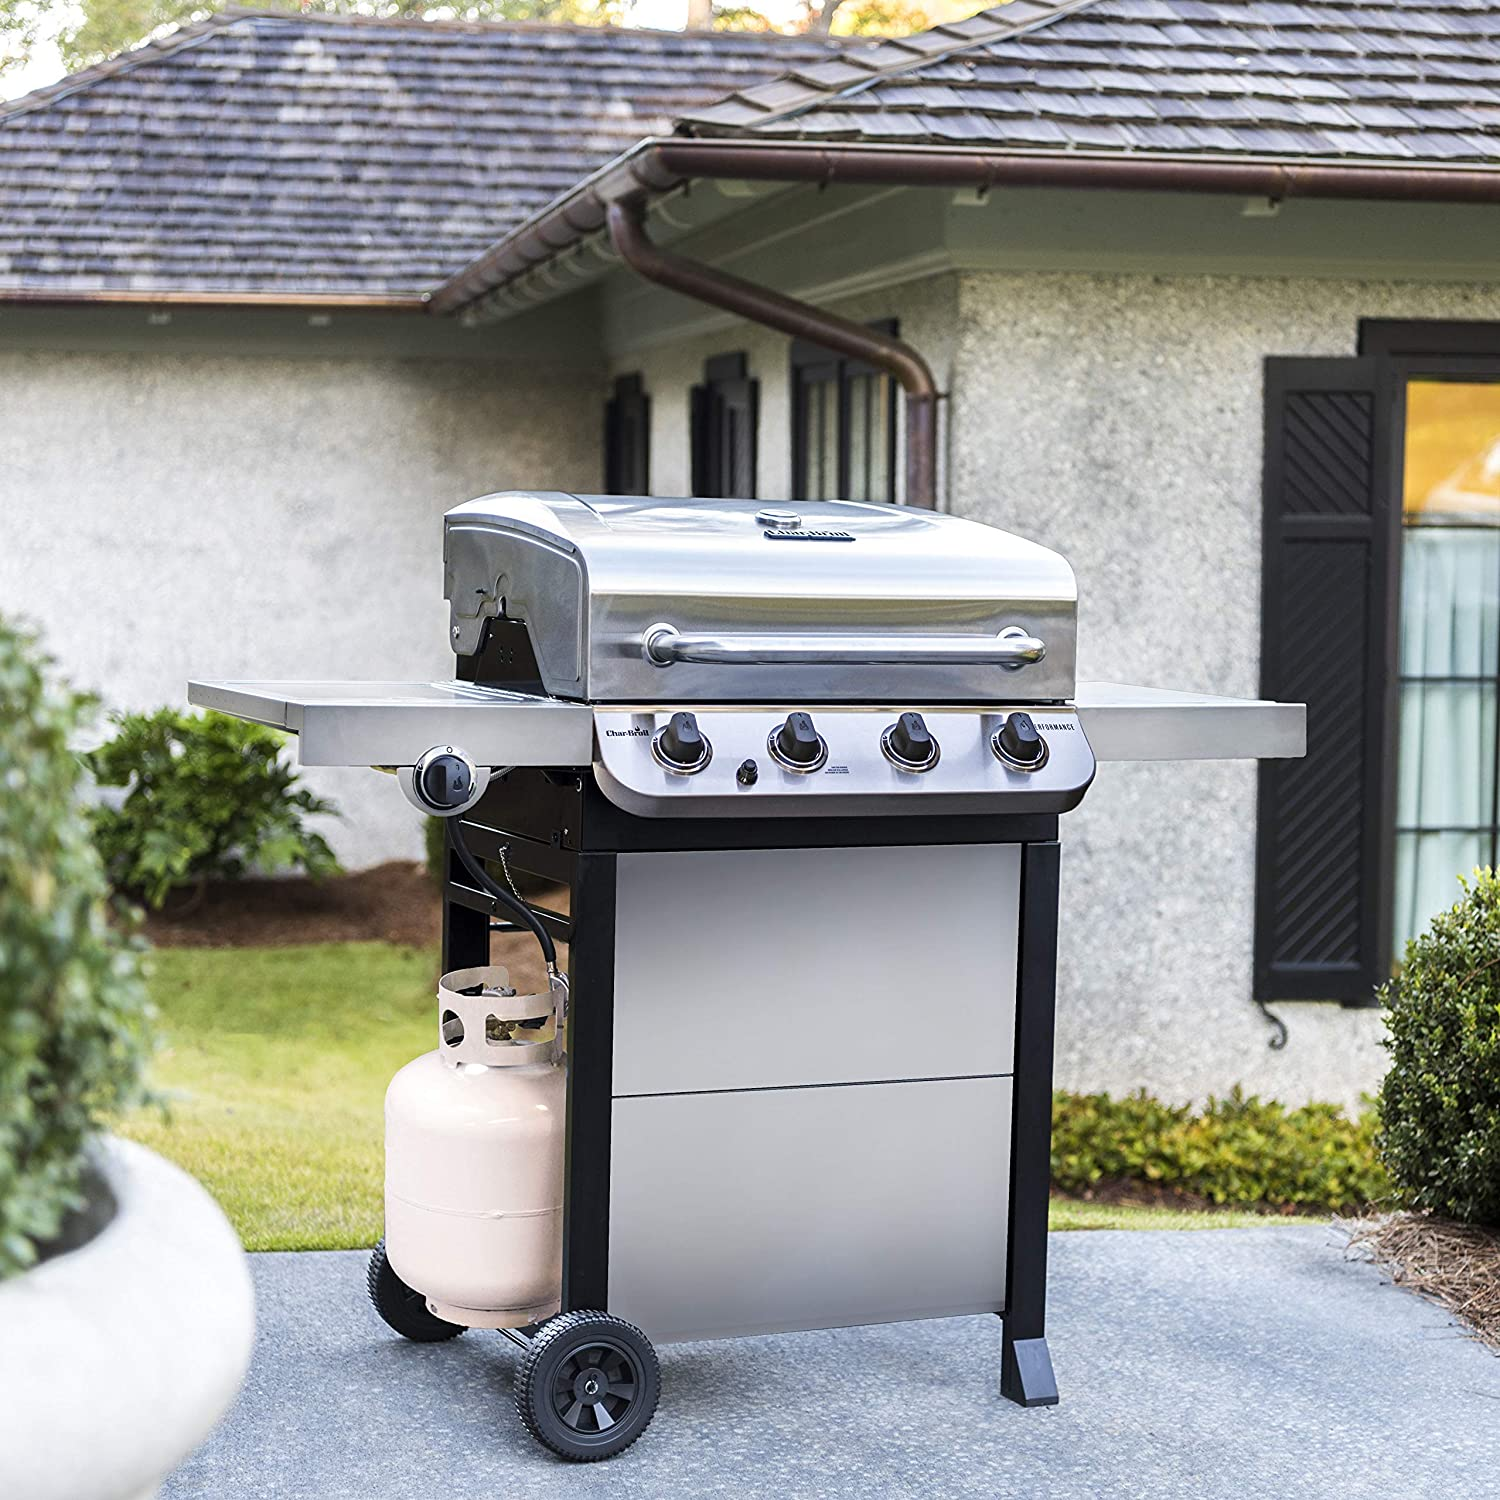 How Long Does a Char-Broil Grill Last?